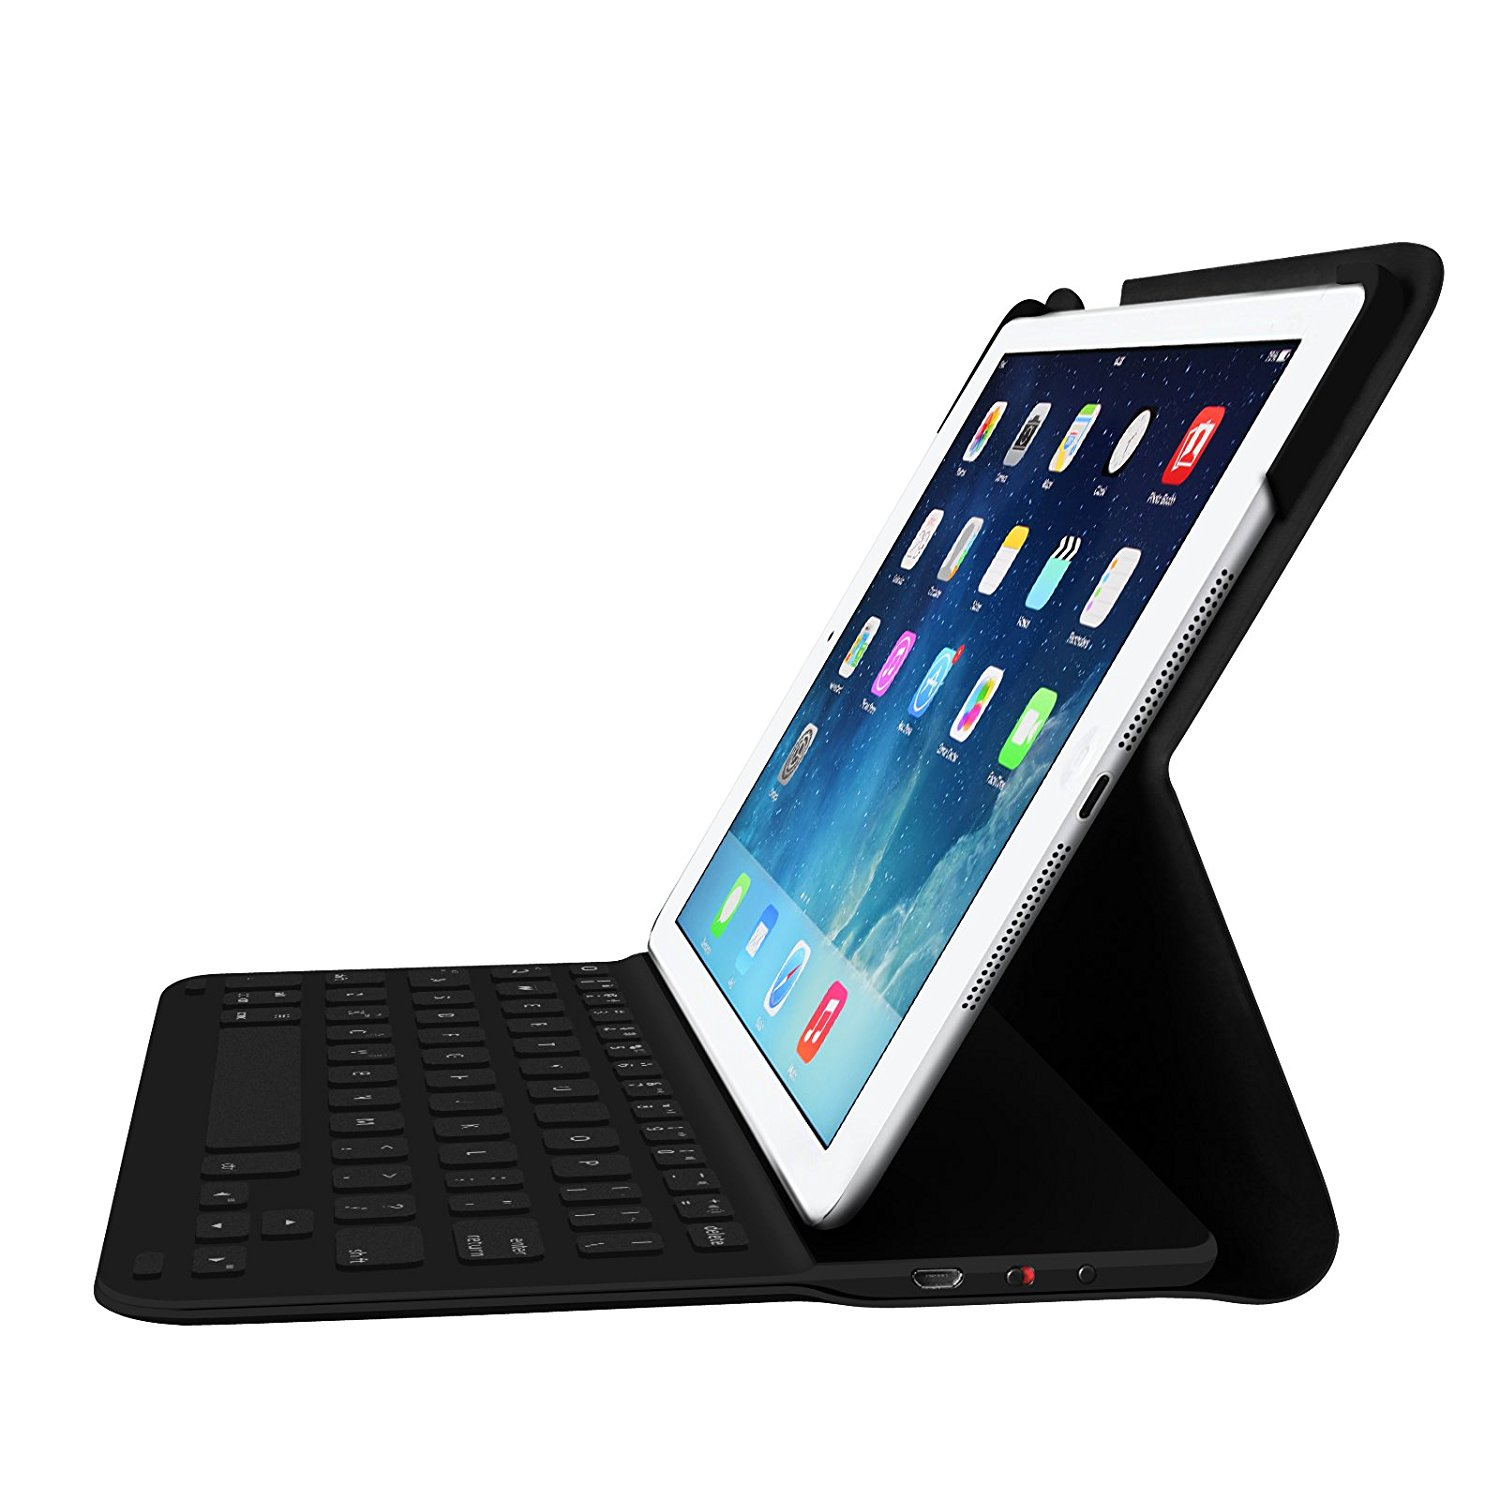 Fintie iPad Air (2013) Keyboard Case - Ultrathin Folio Cover with Built-in Bluetooth Keyboard for iPad Air (2013), Black